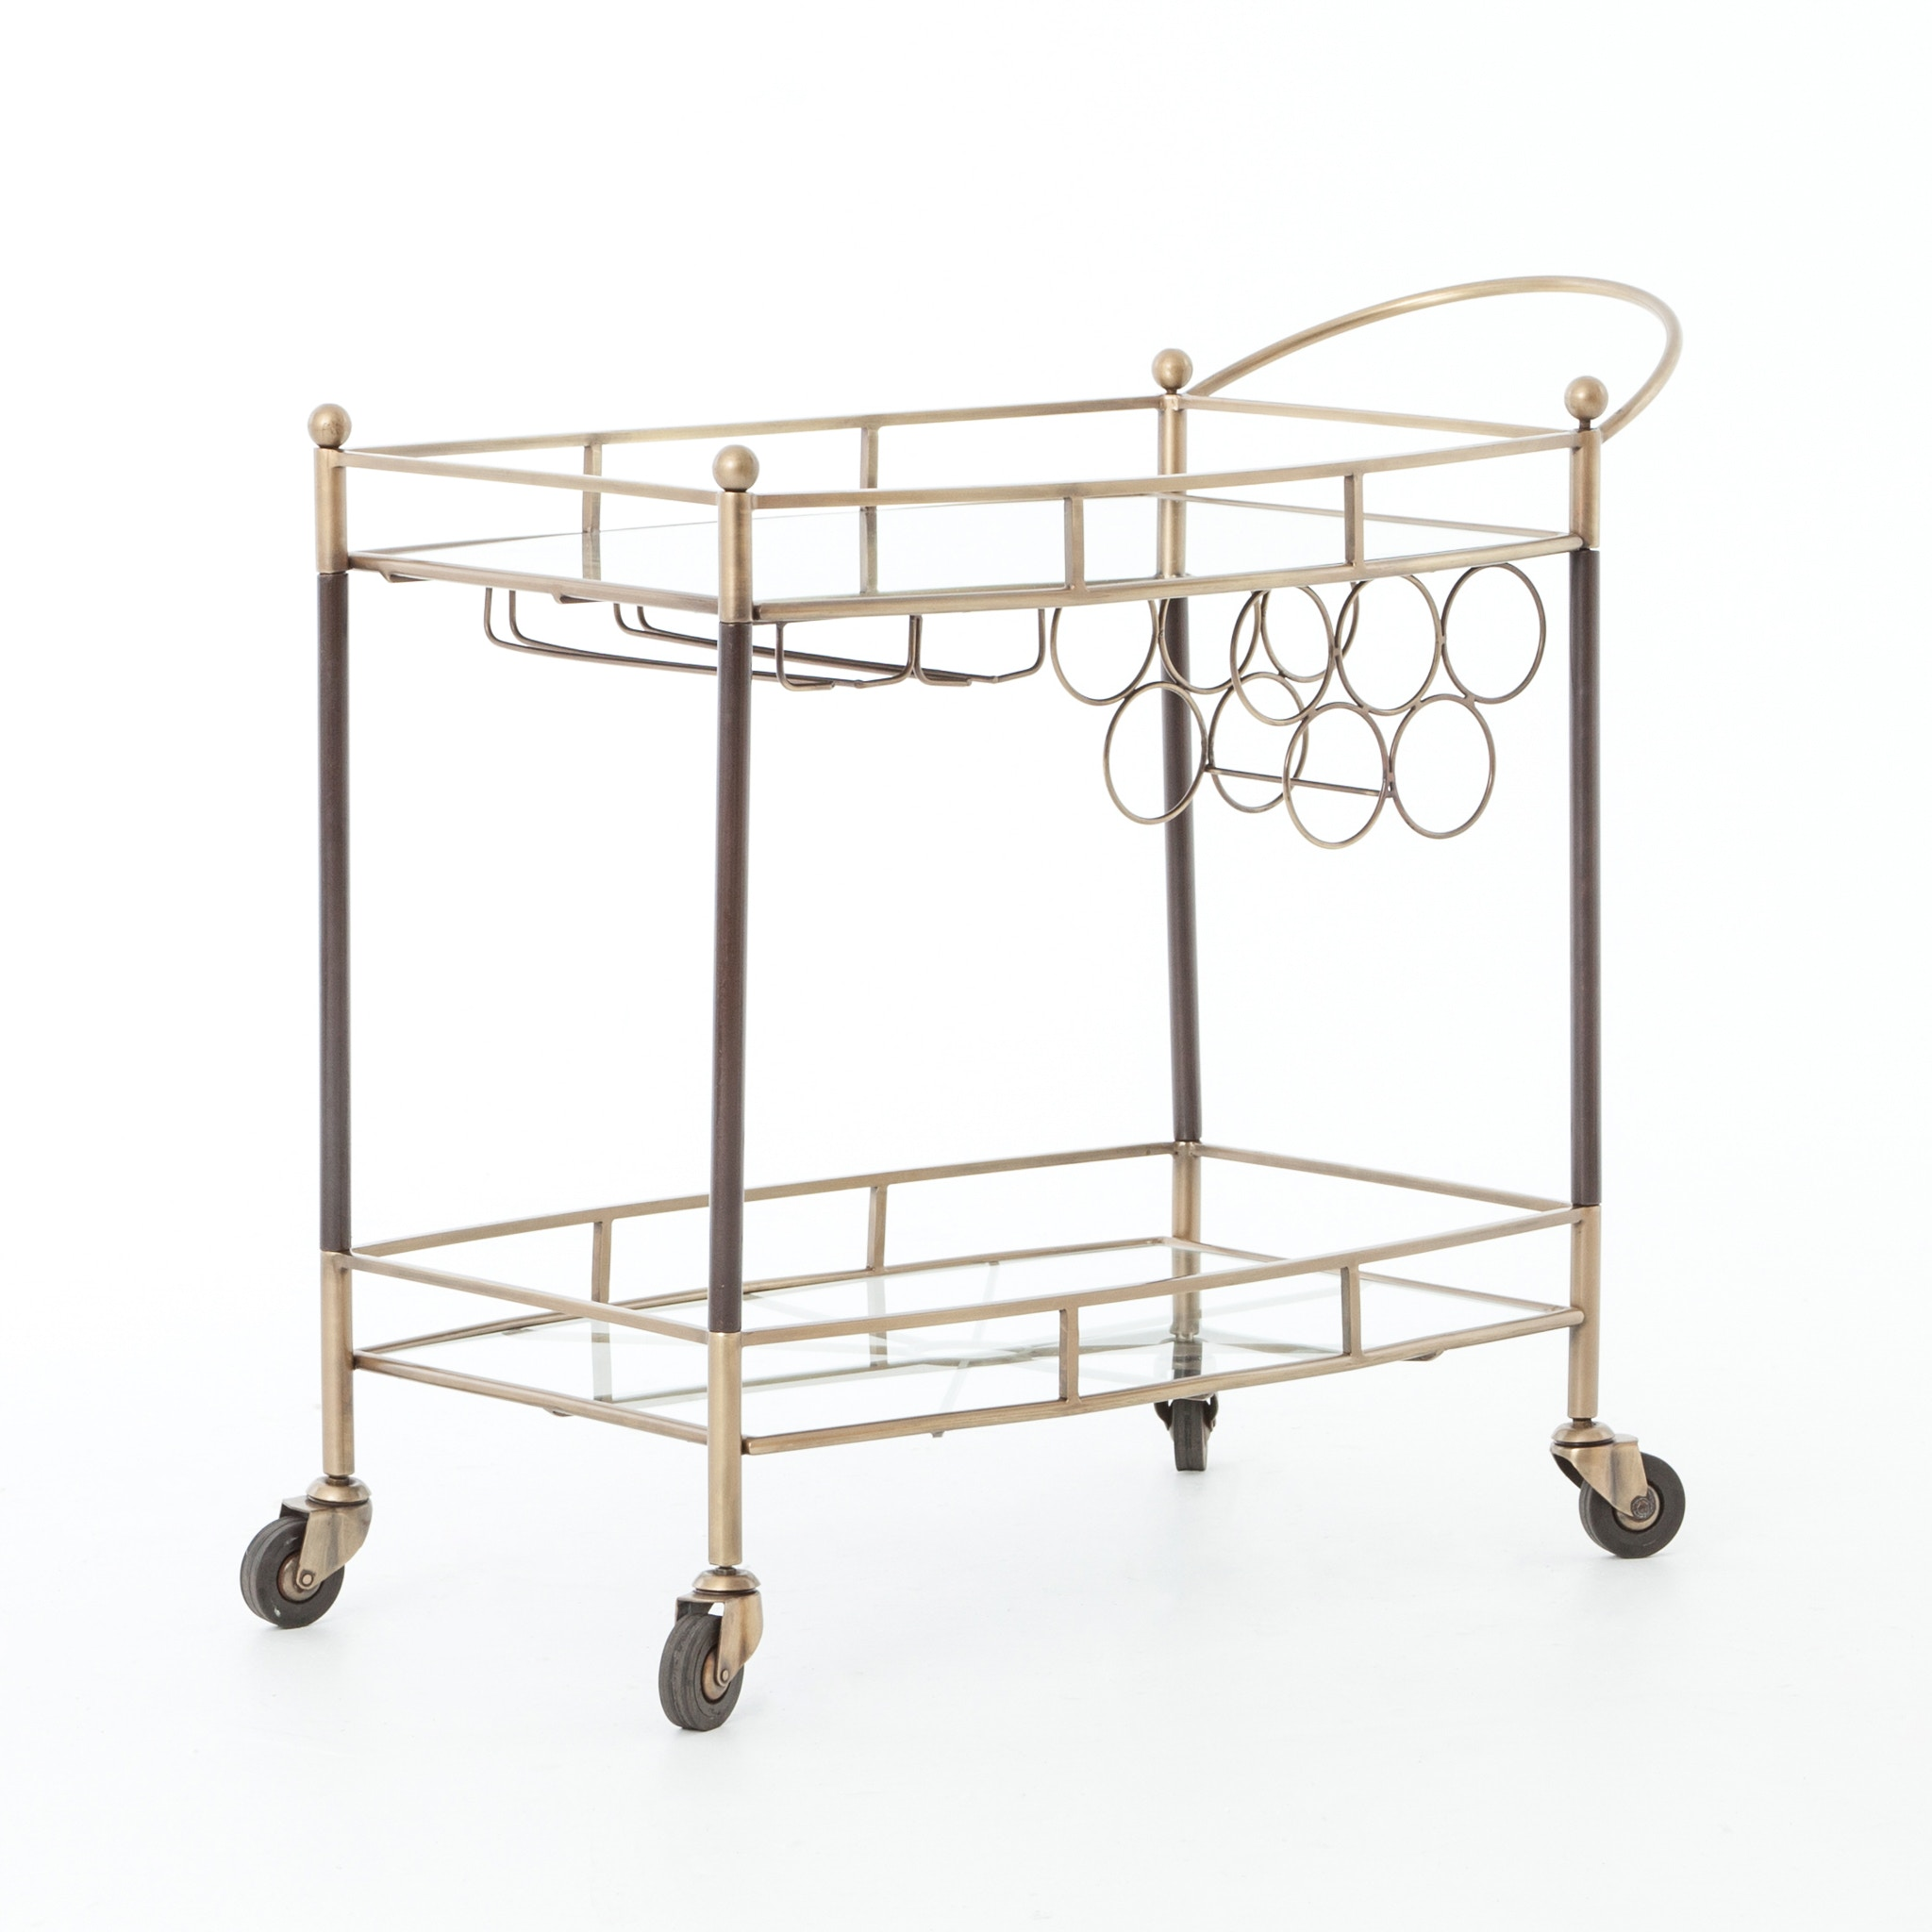 Four Hands Furniture COLES BAR CART ANTIQUE BRASS IASR 004KD